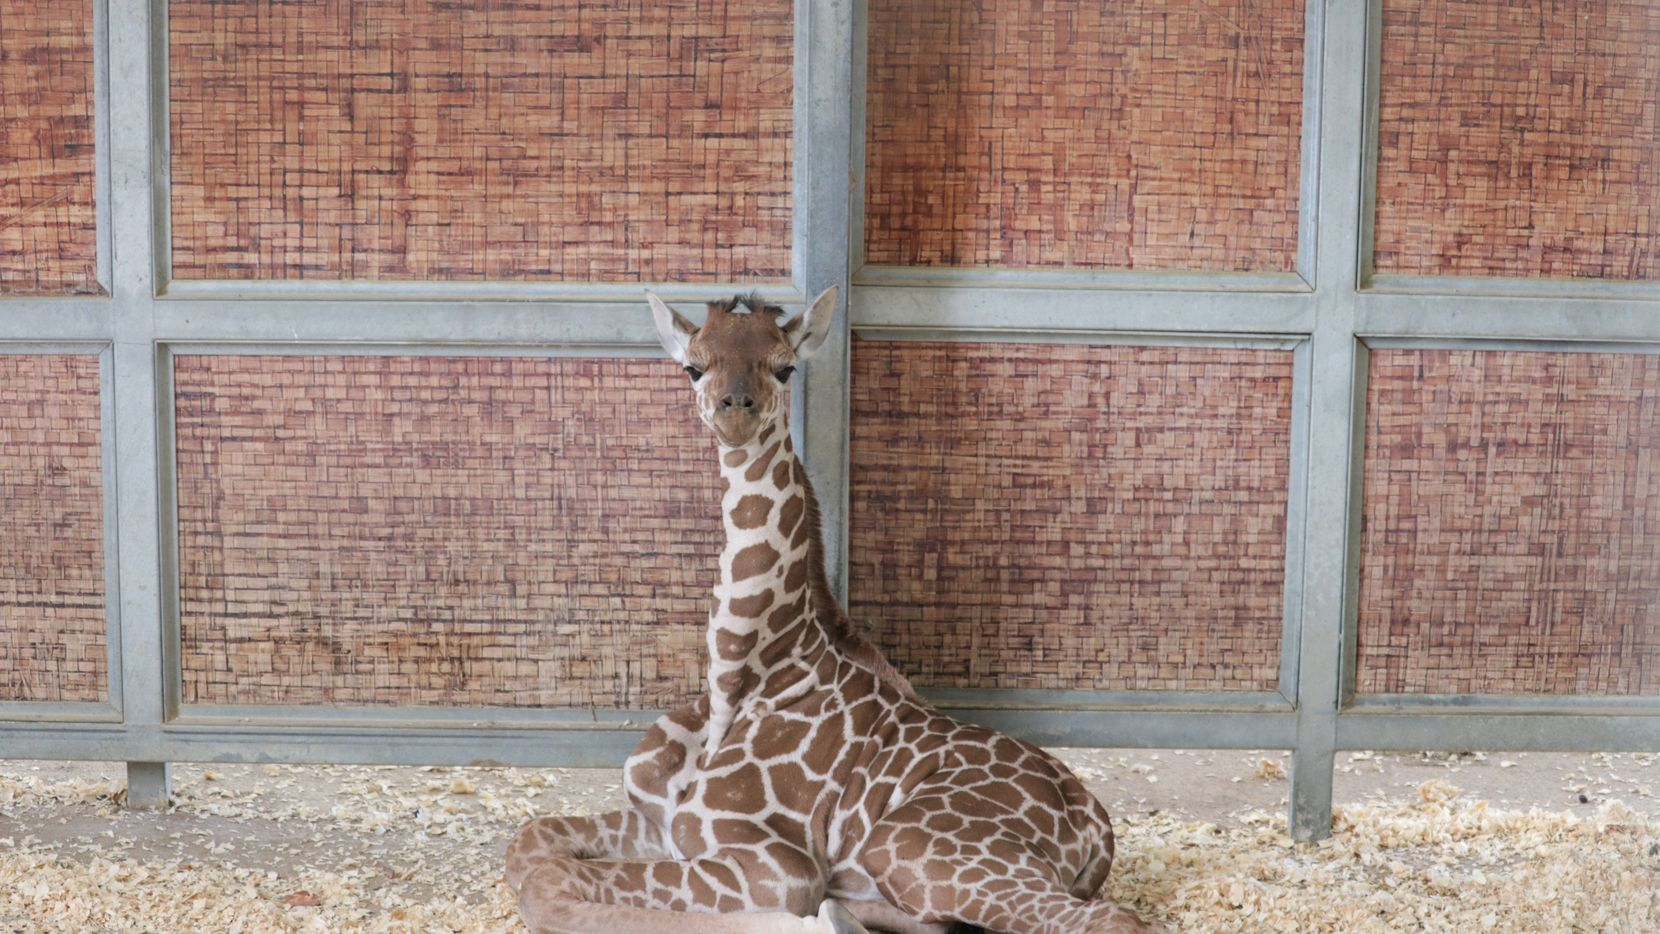 The Dallas Zoo's newest giraffe calf is set to make her public debut on Thursday, July 8, 2021.